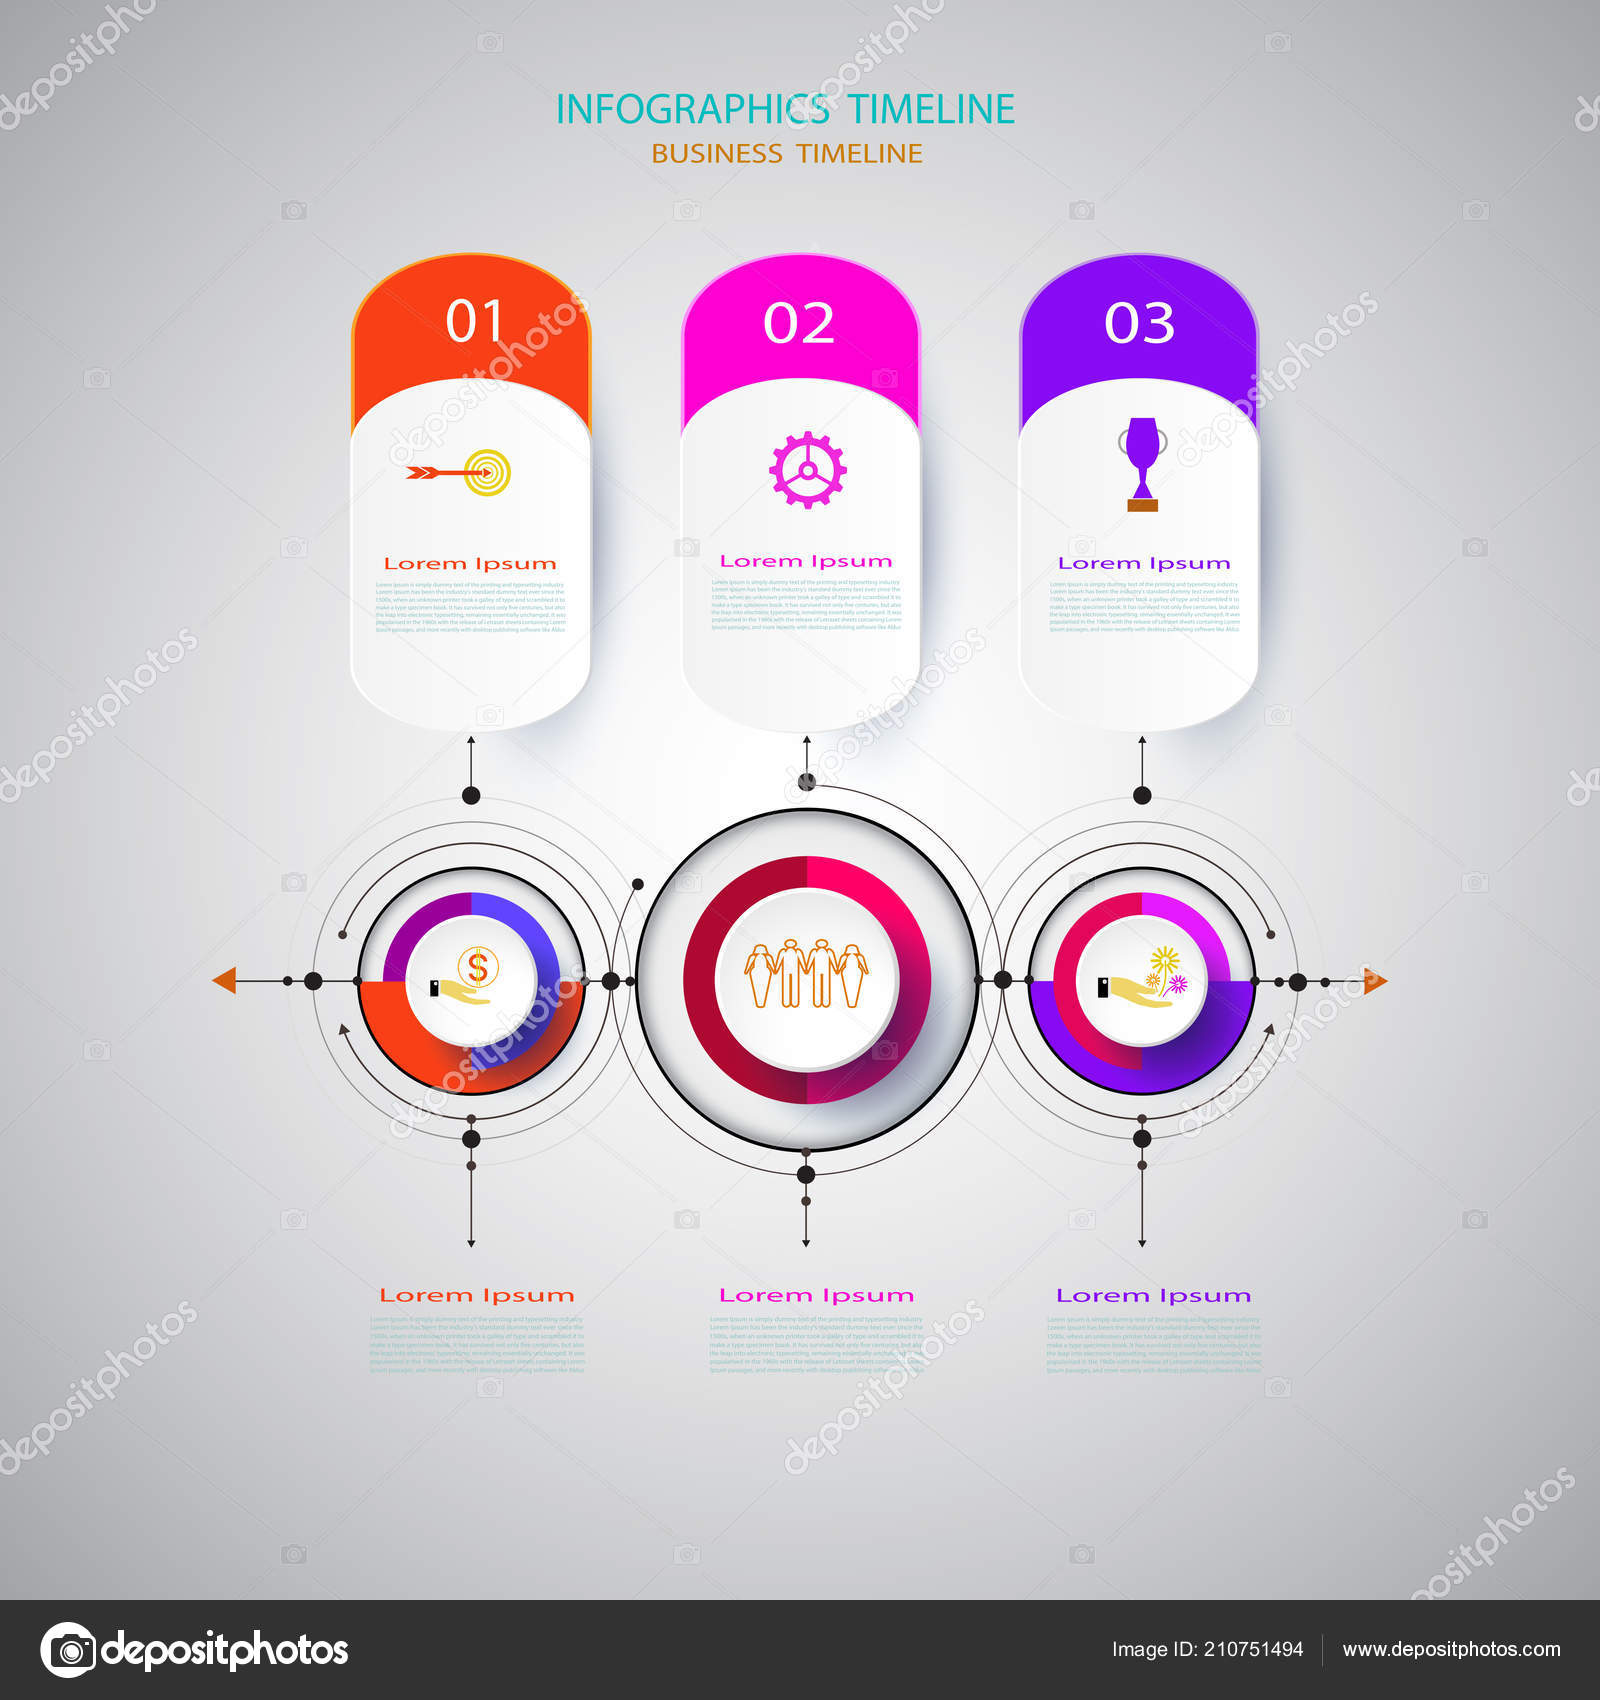 infographics design template timeline paper technology engineering